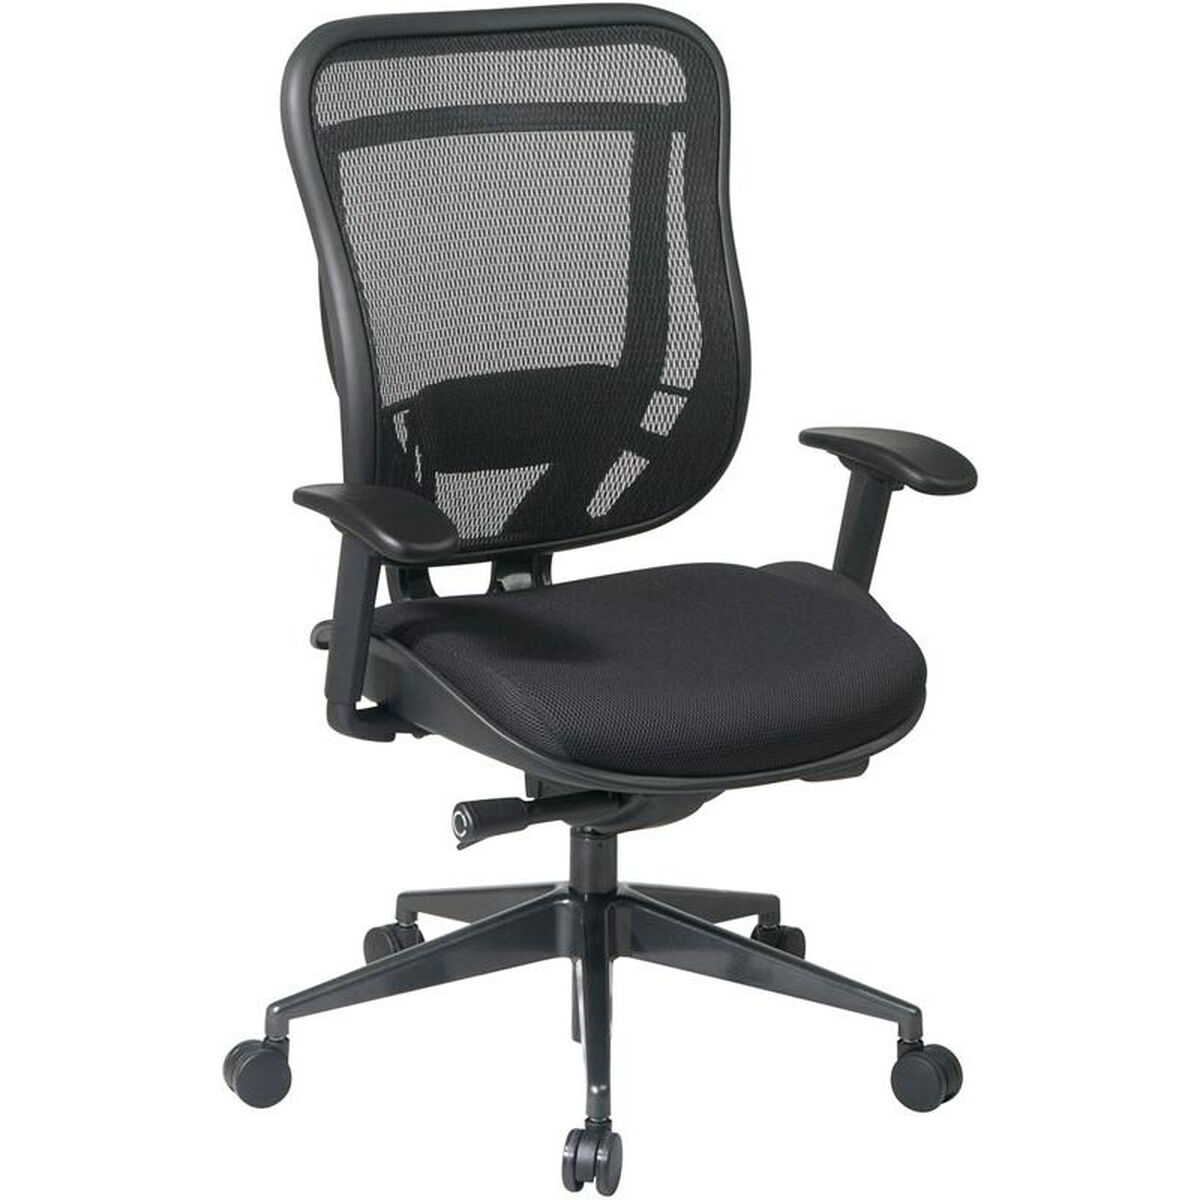 Our E 818 Breathable Mesh Back And Black Seat Executive Office Chair With 2